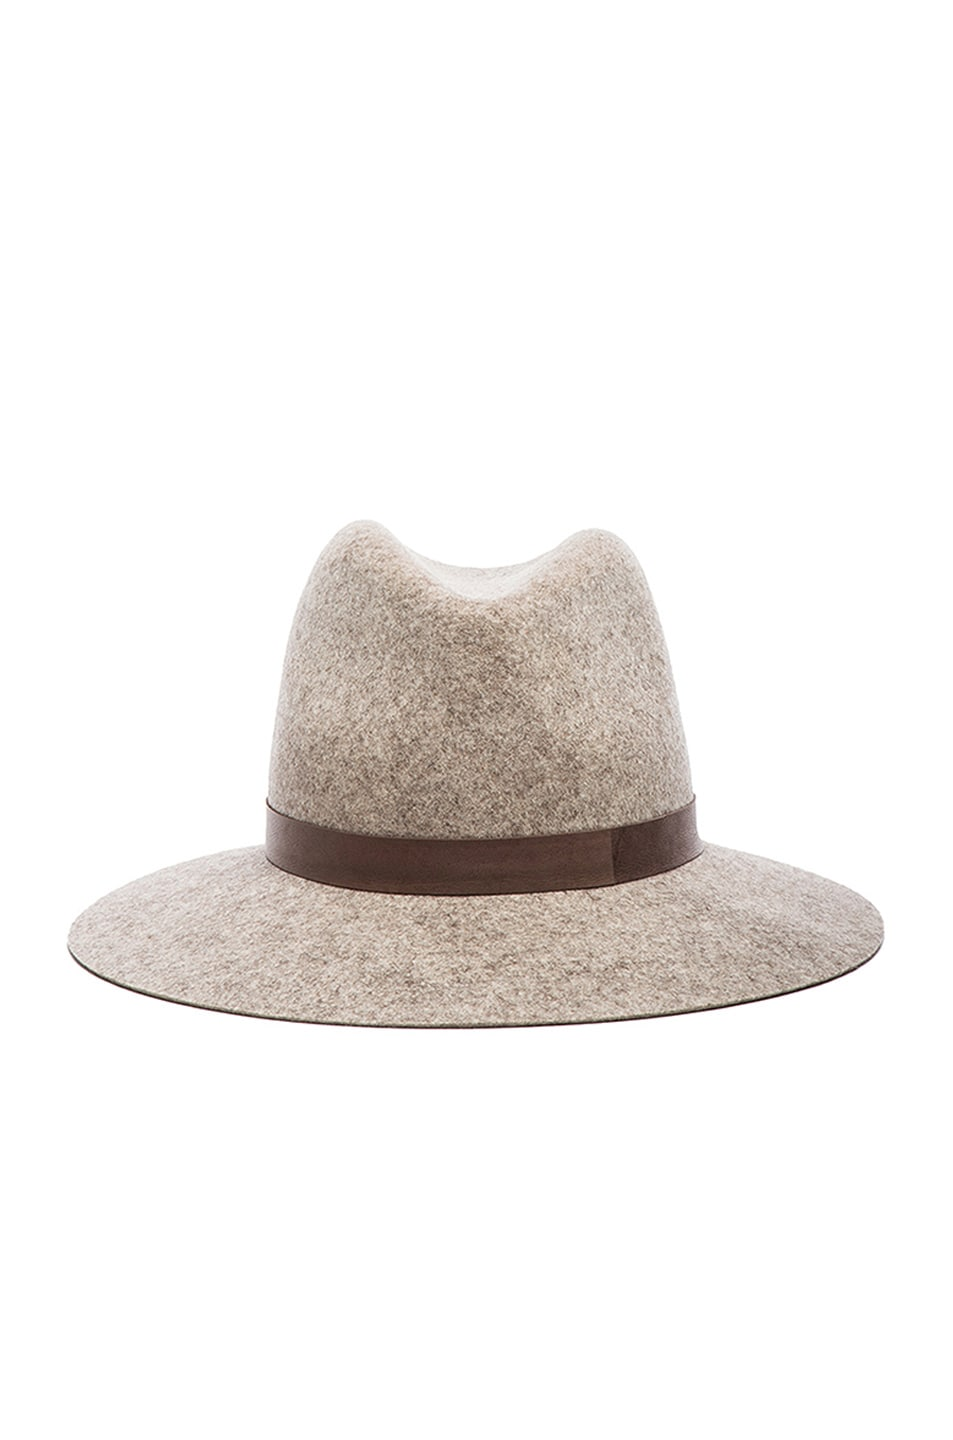 Image 1 of Janessa Leone Julia Wool Felt Hat in Natural Blend